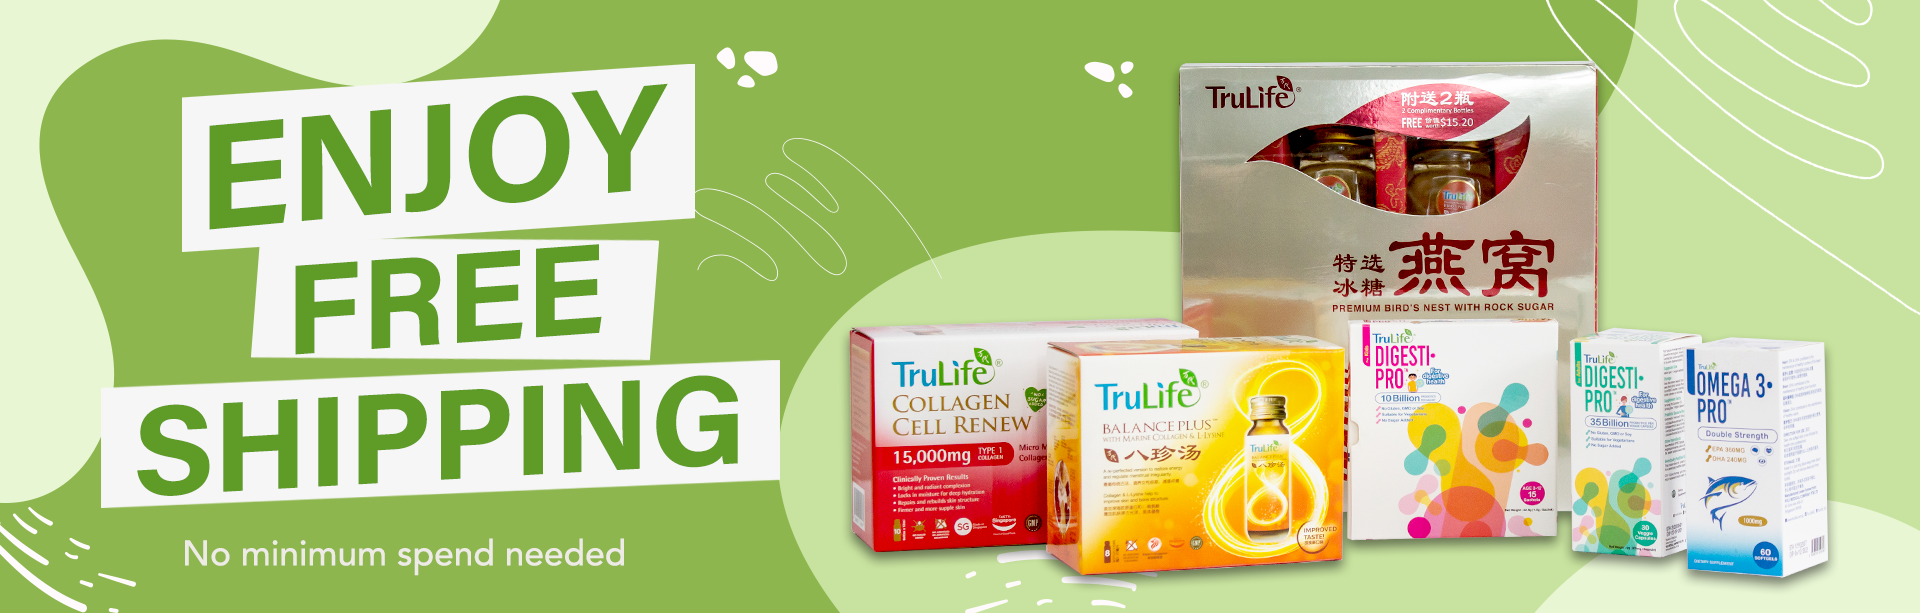 TruLife free shipping